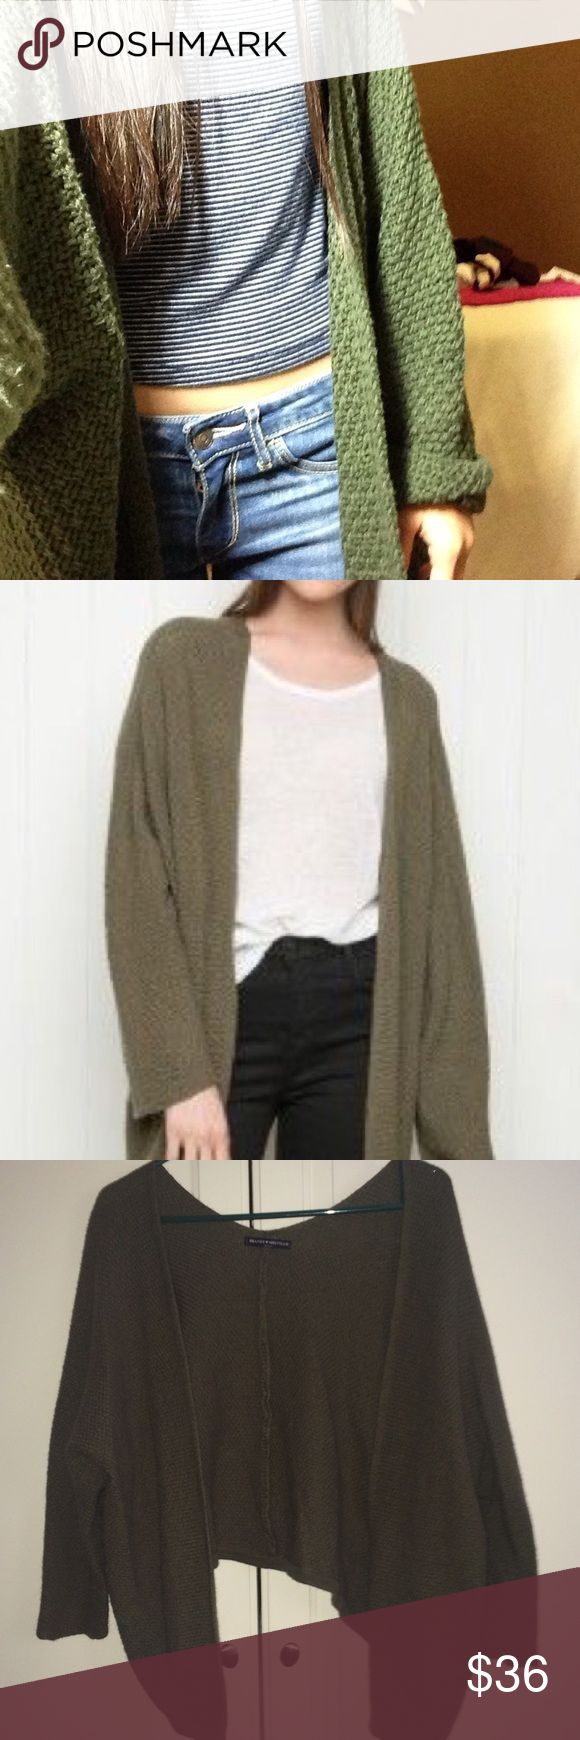 Brandy Melville Cardigan olive green Caroline (maybe??) cardigan, super cute only worn a few times Brandy Melville Sweaters Cardigans